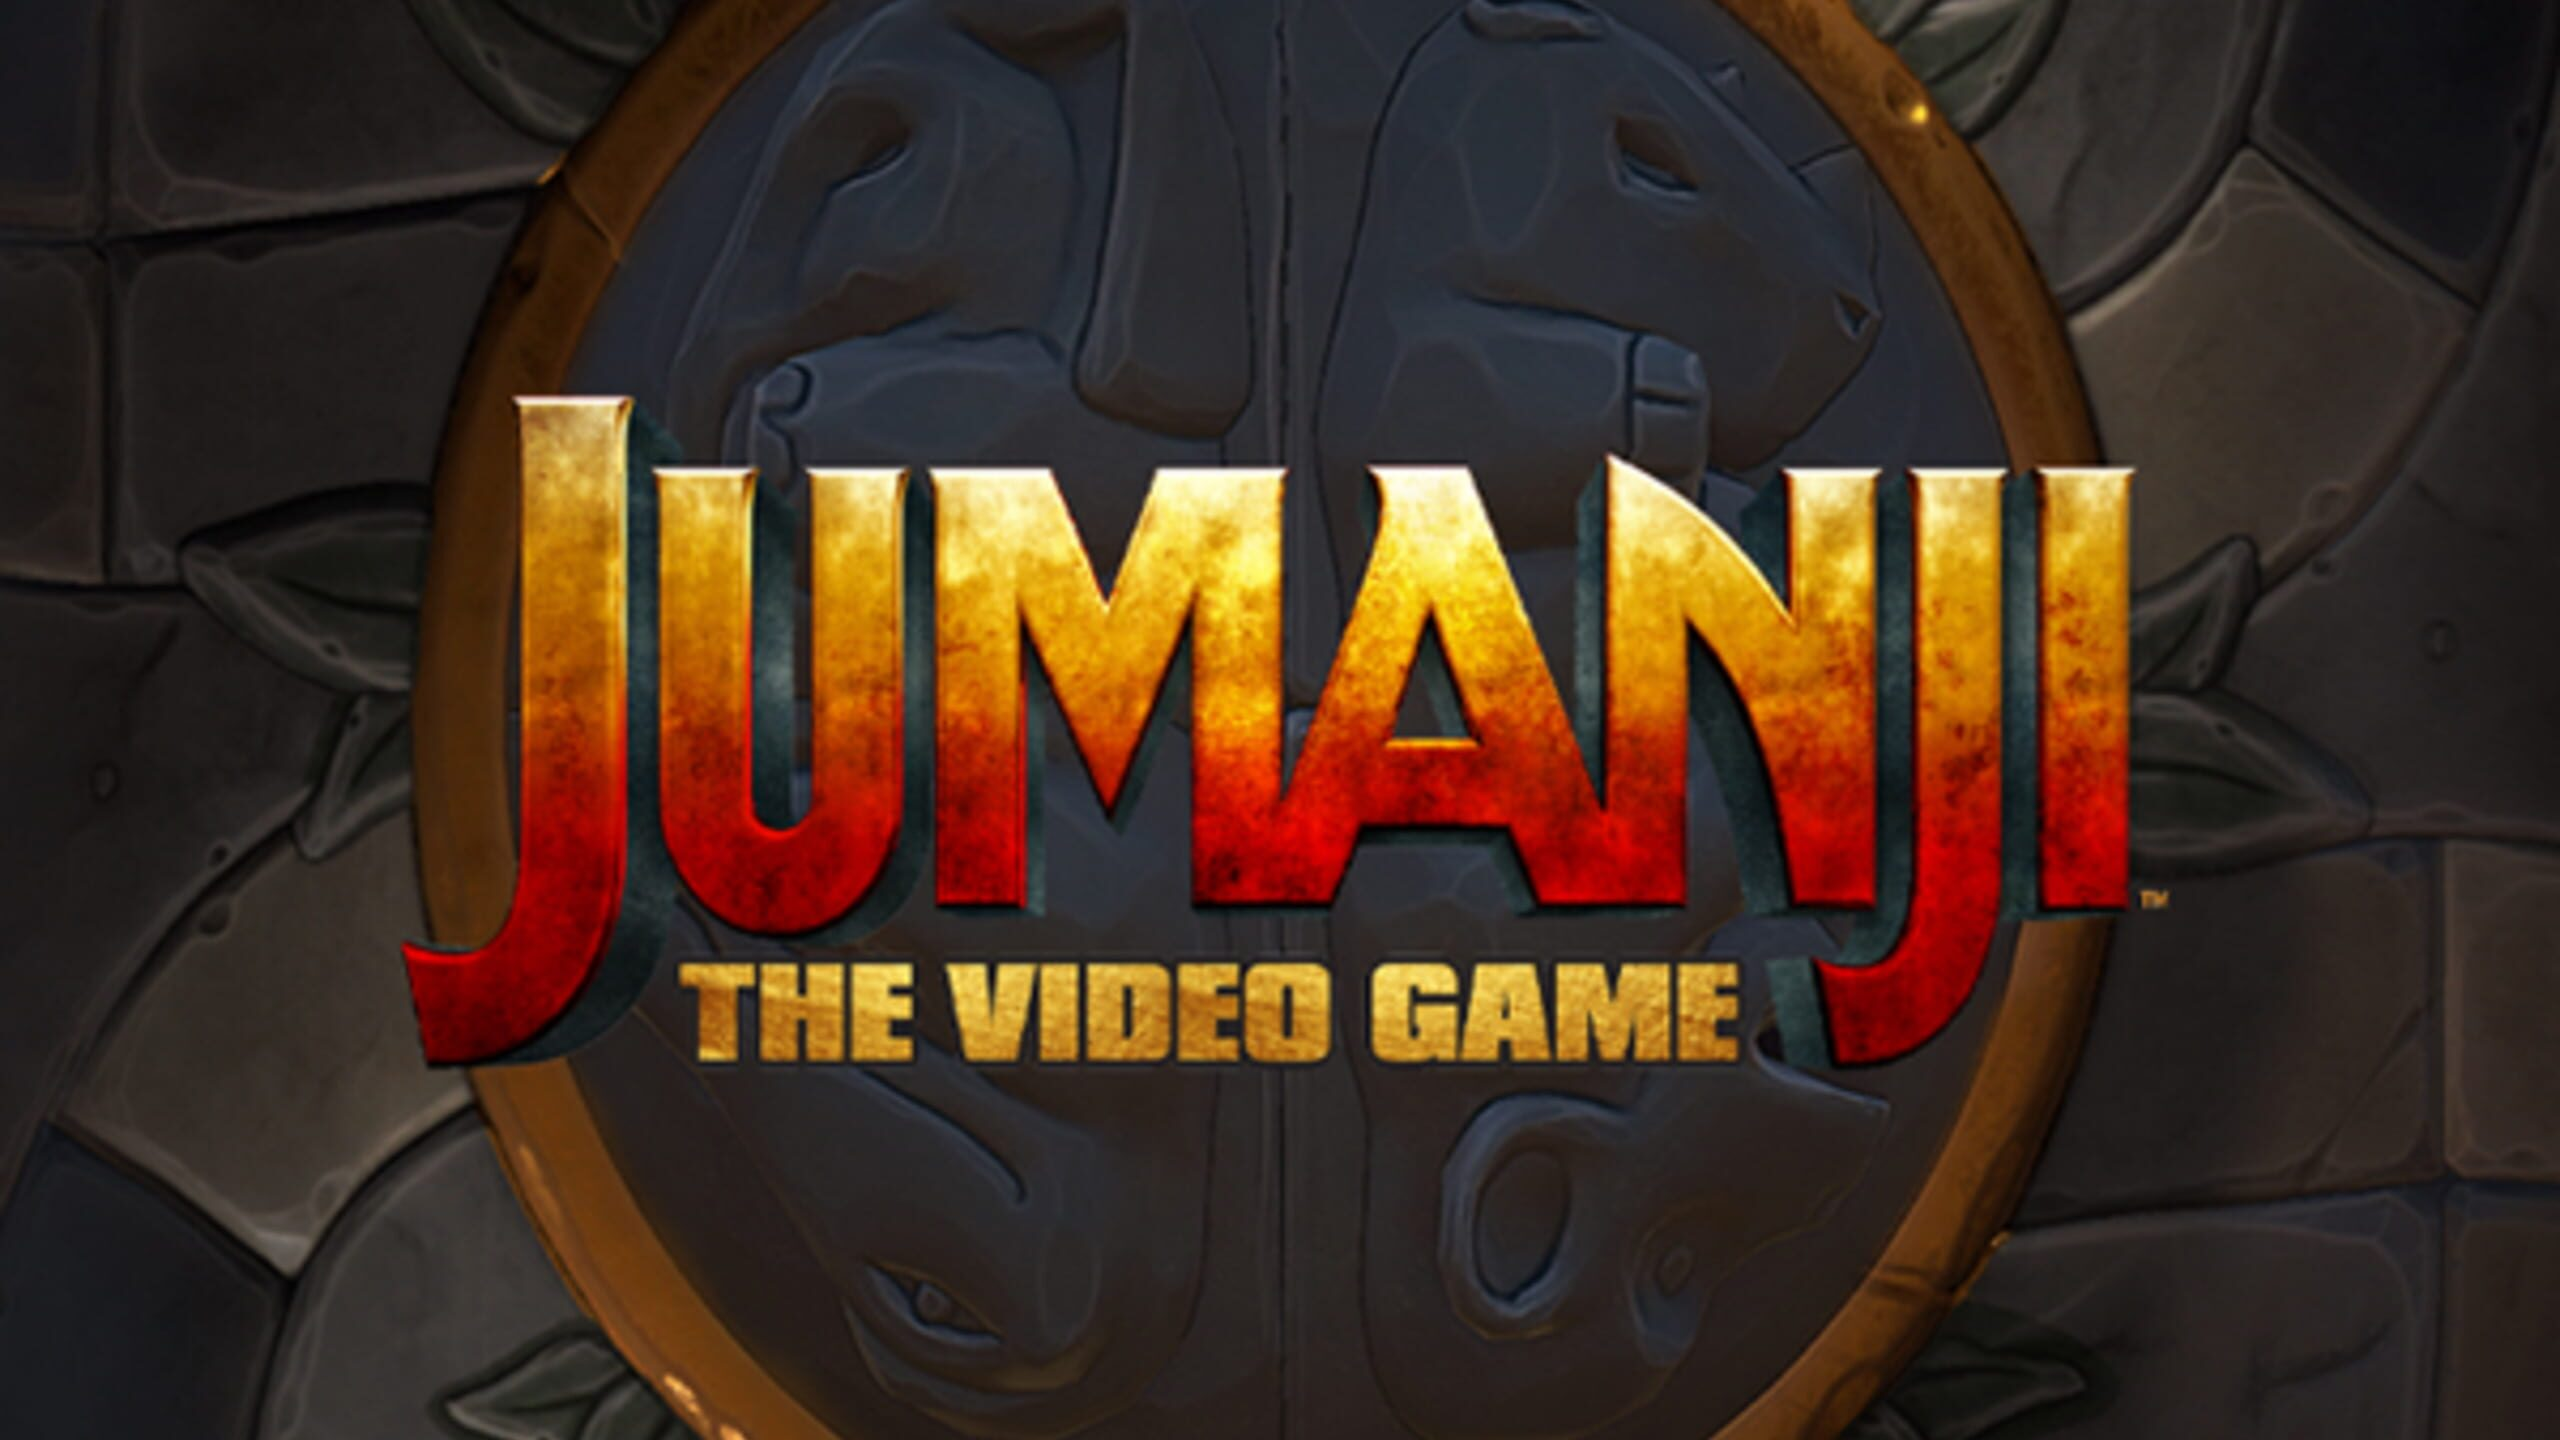 game cover art for Jumanji: The Video Game